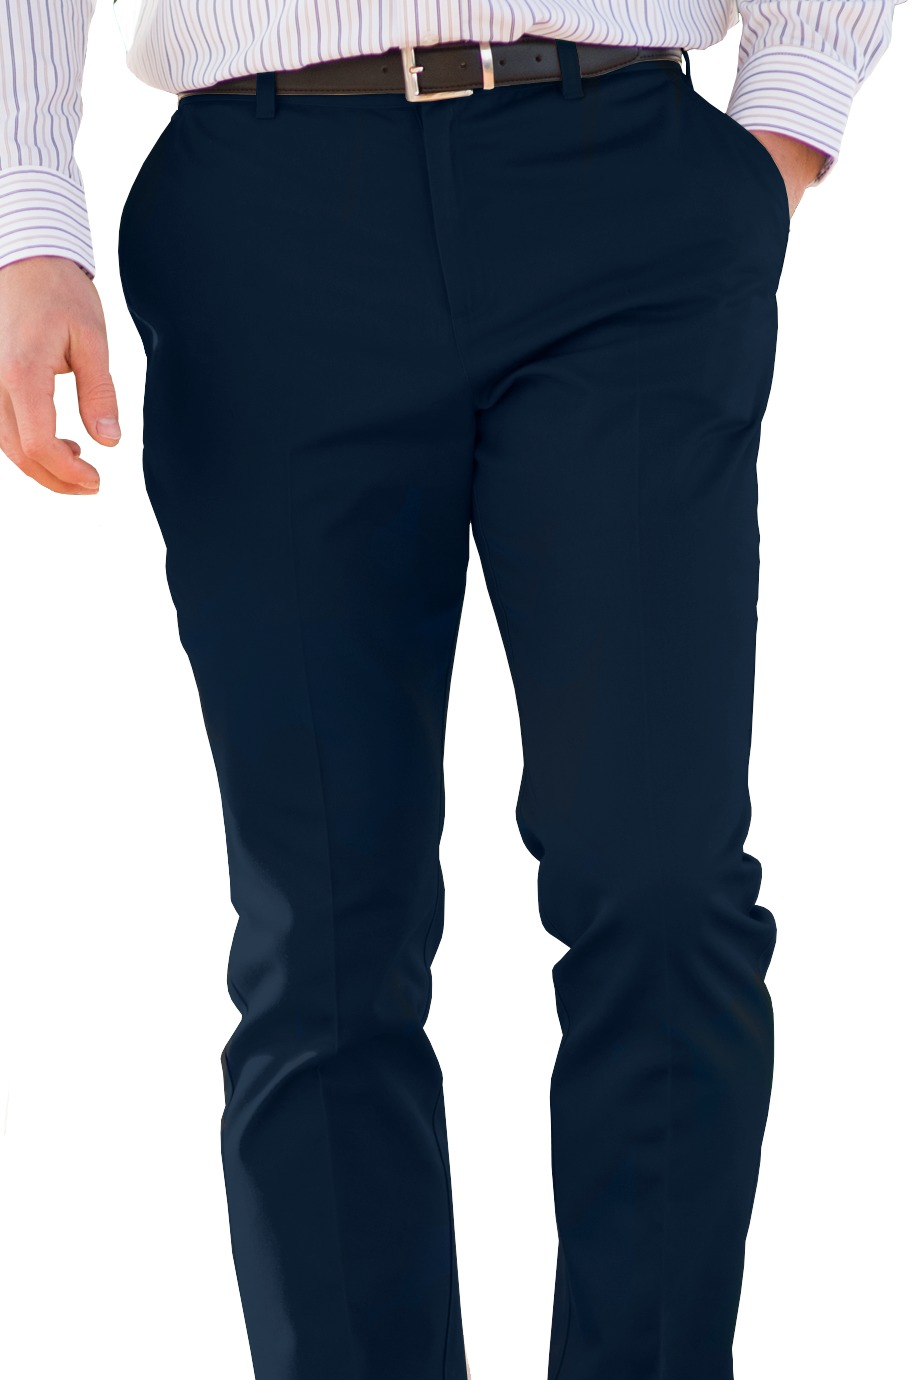 Men's Flat Front Slim Chino Pants - Navy Blue